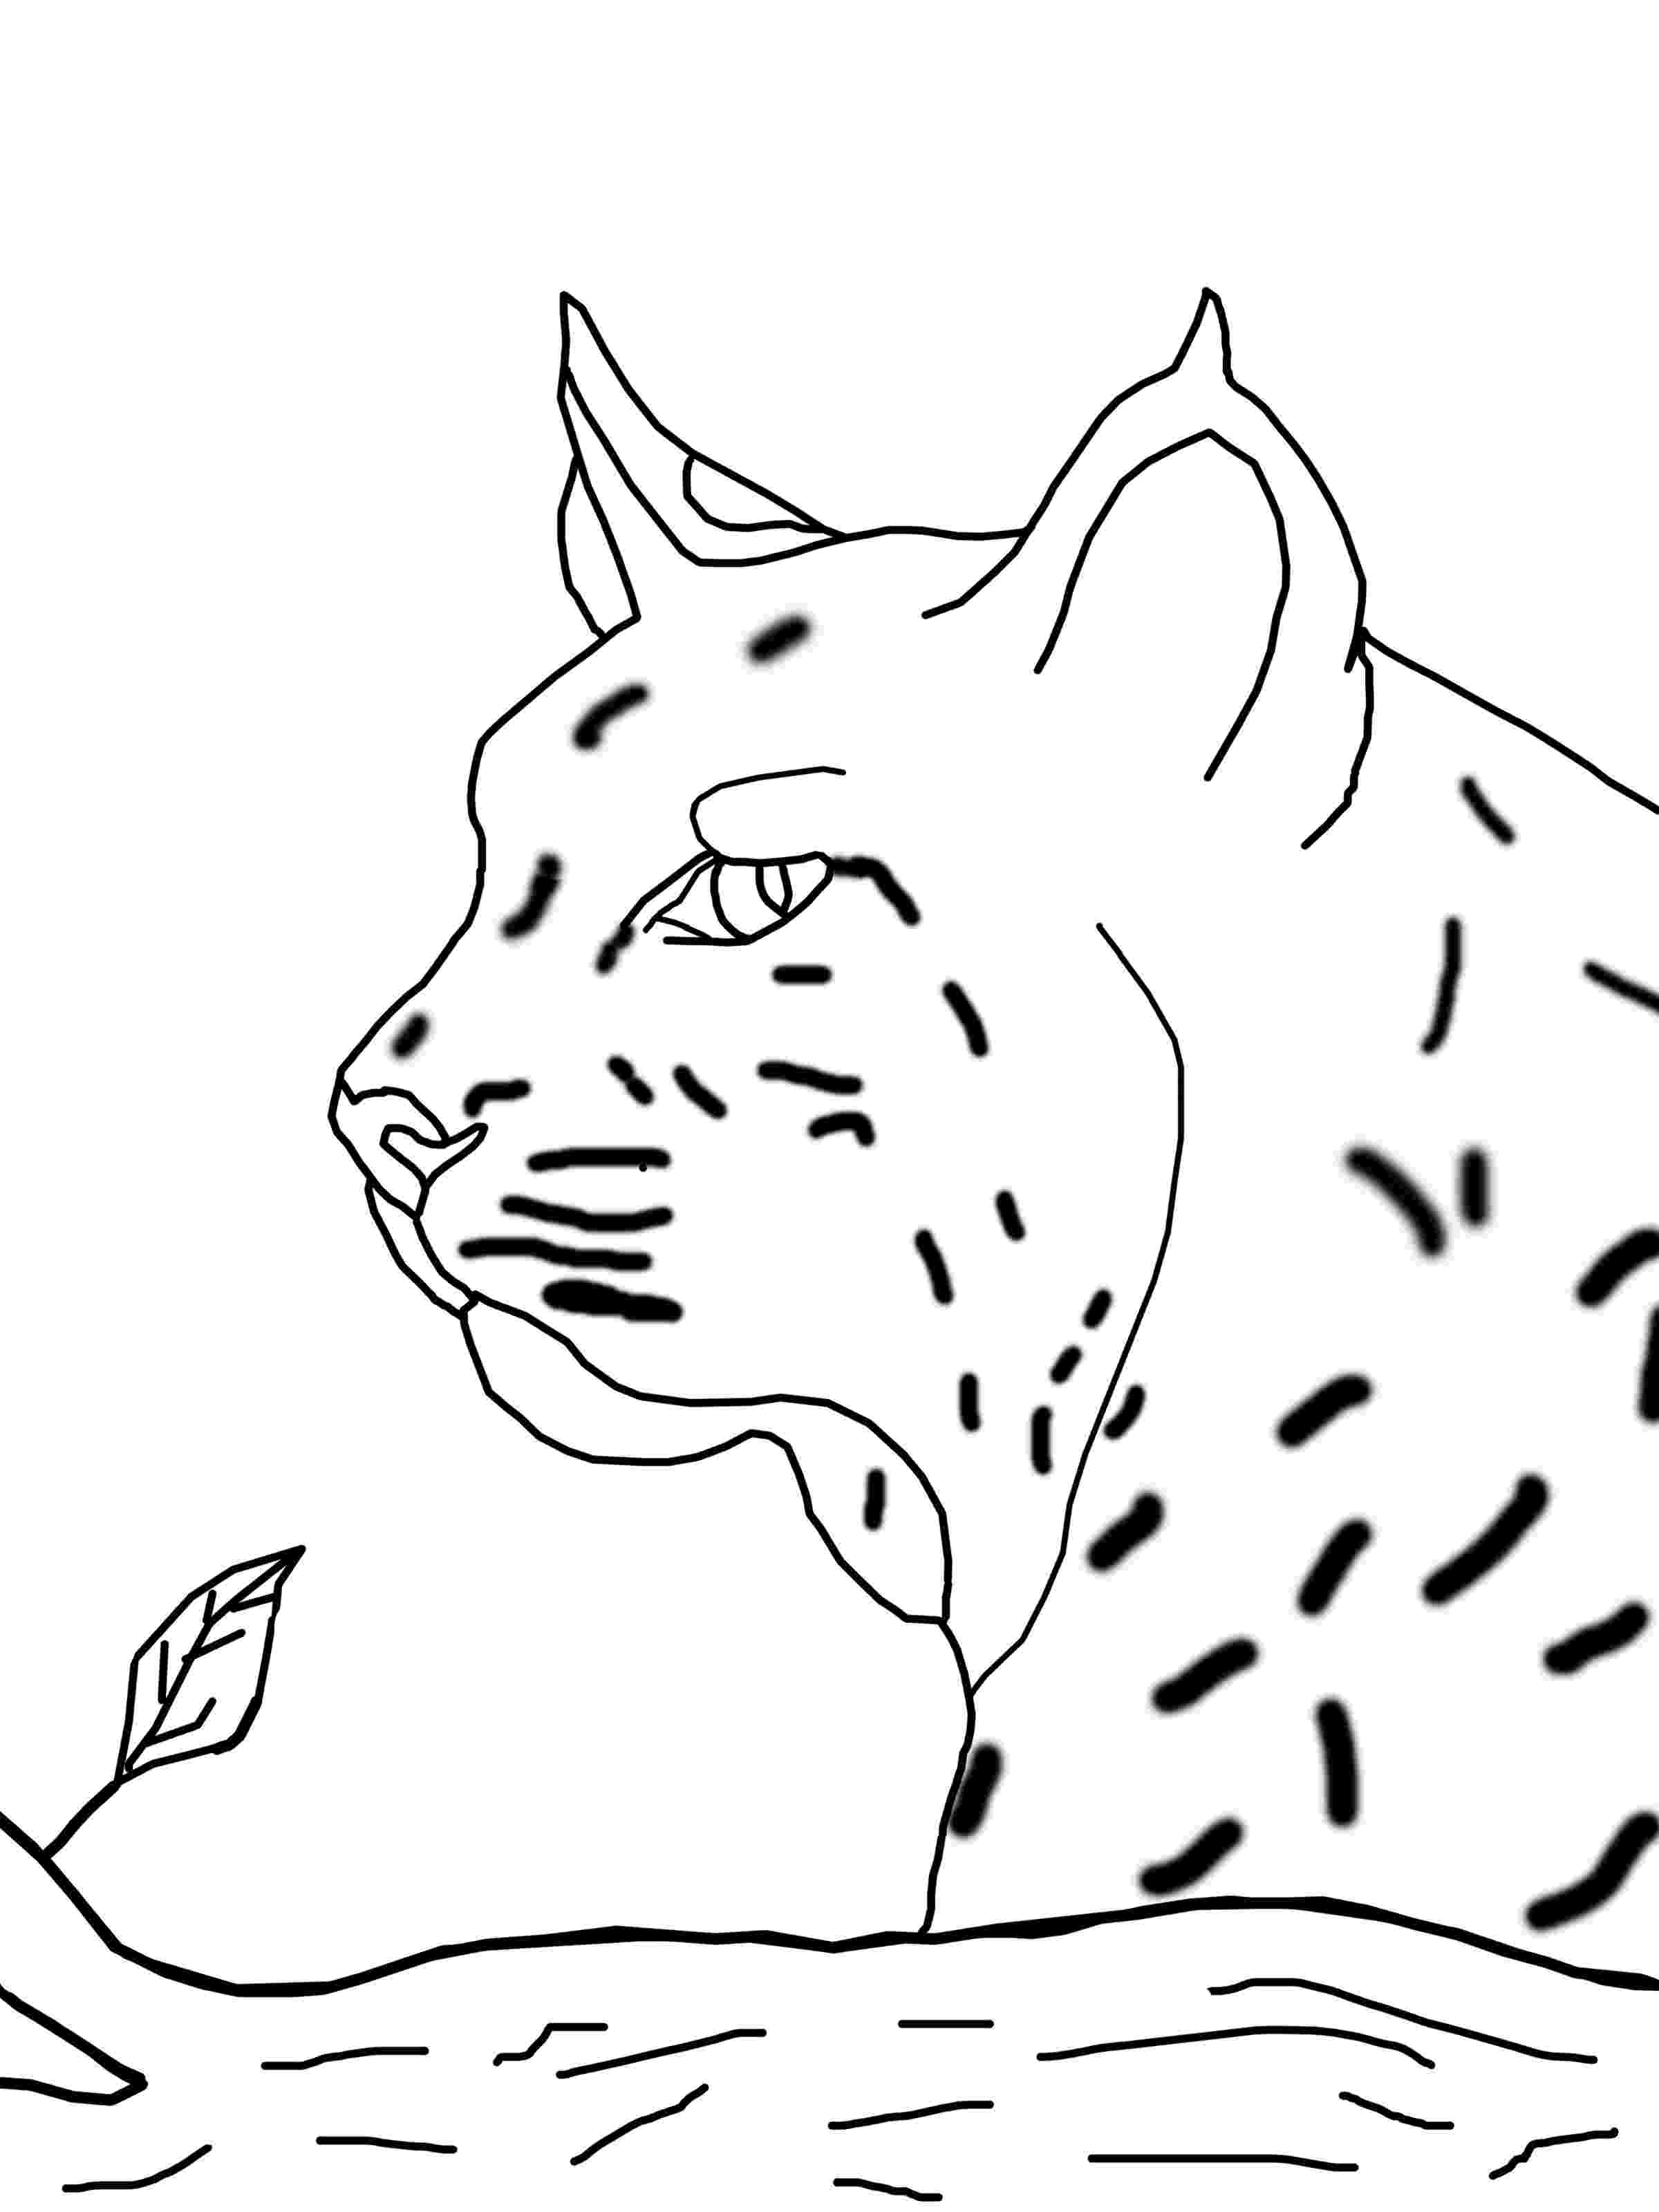 bobcat coloring pictures bobcat coloring pages to download and print for free coloring bobcat pictures